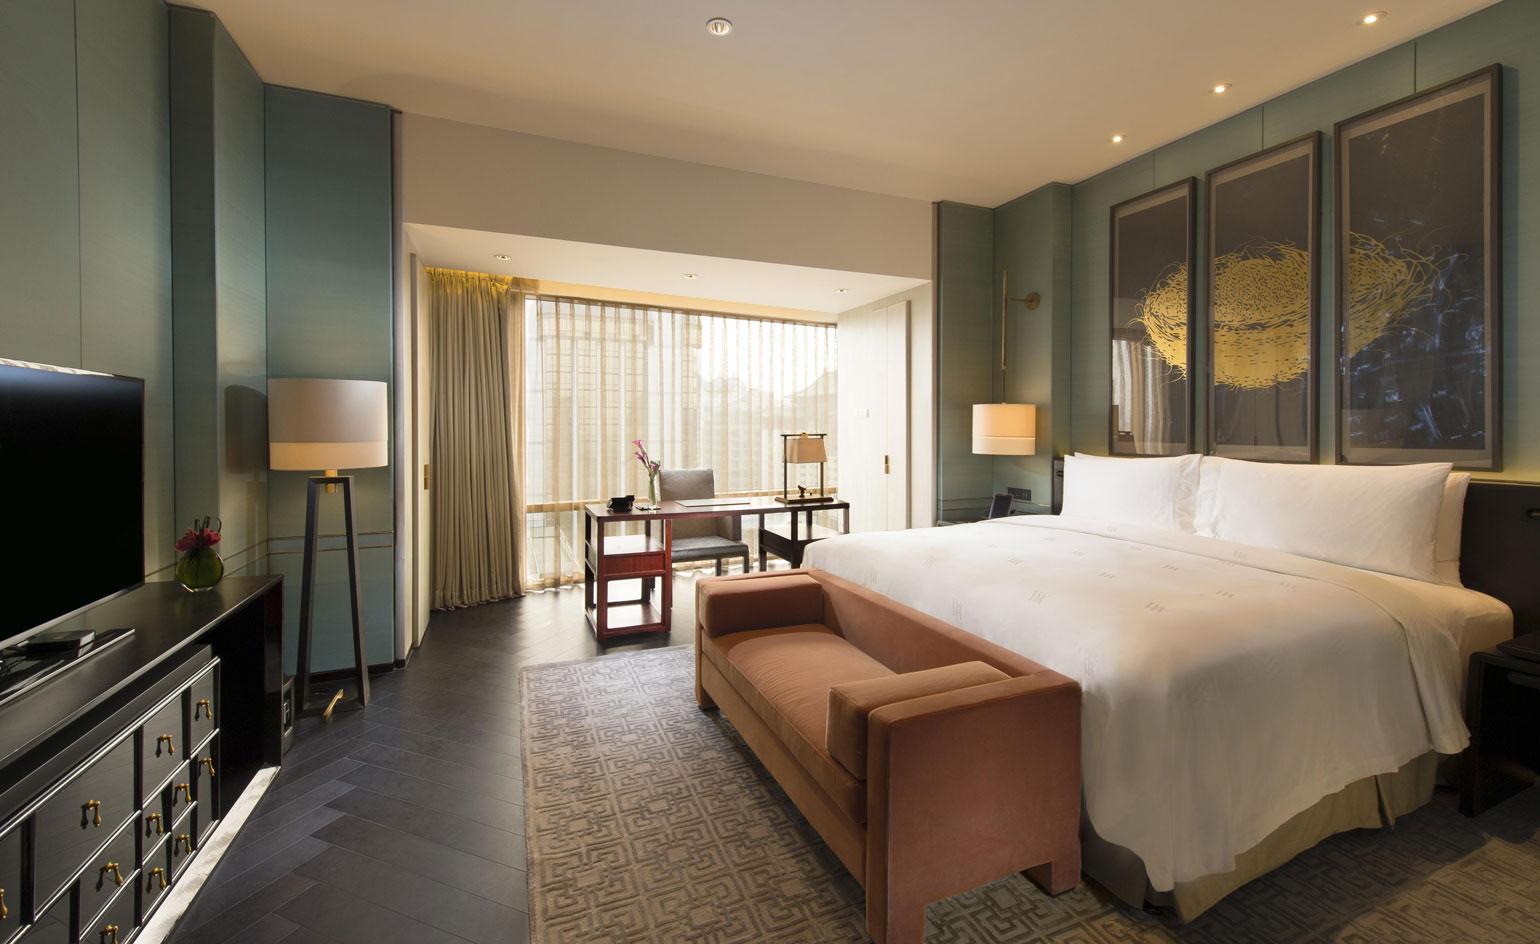 waldorf astoria hotel review beijing china wallpaper